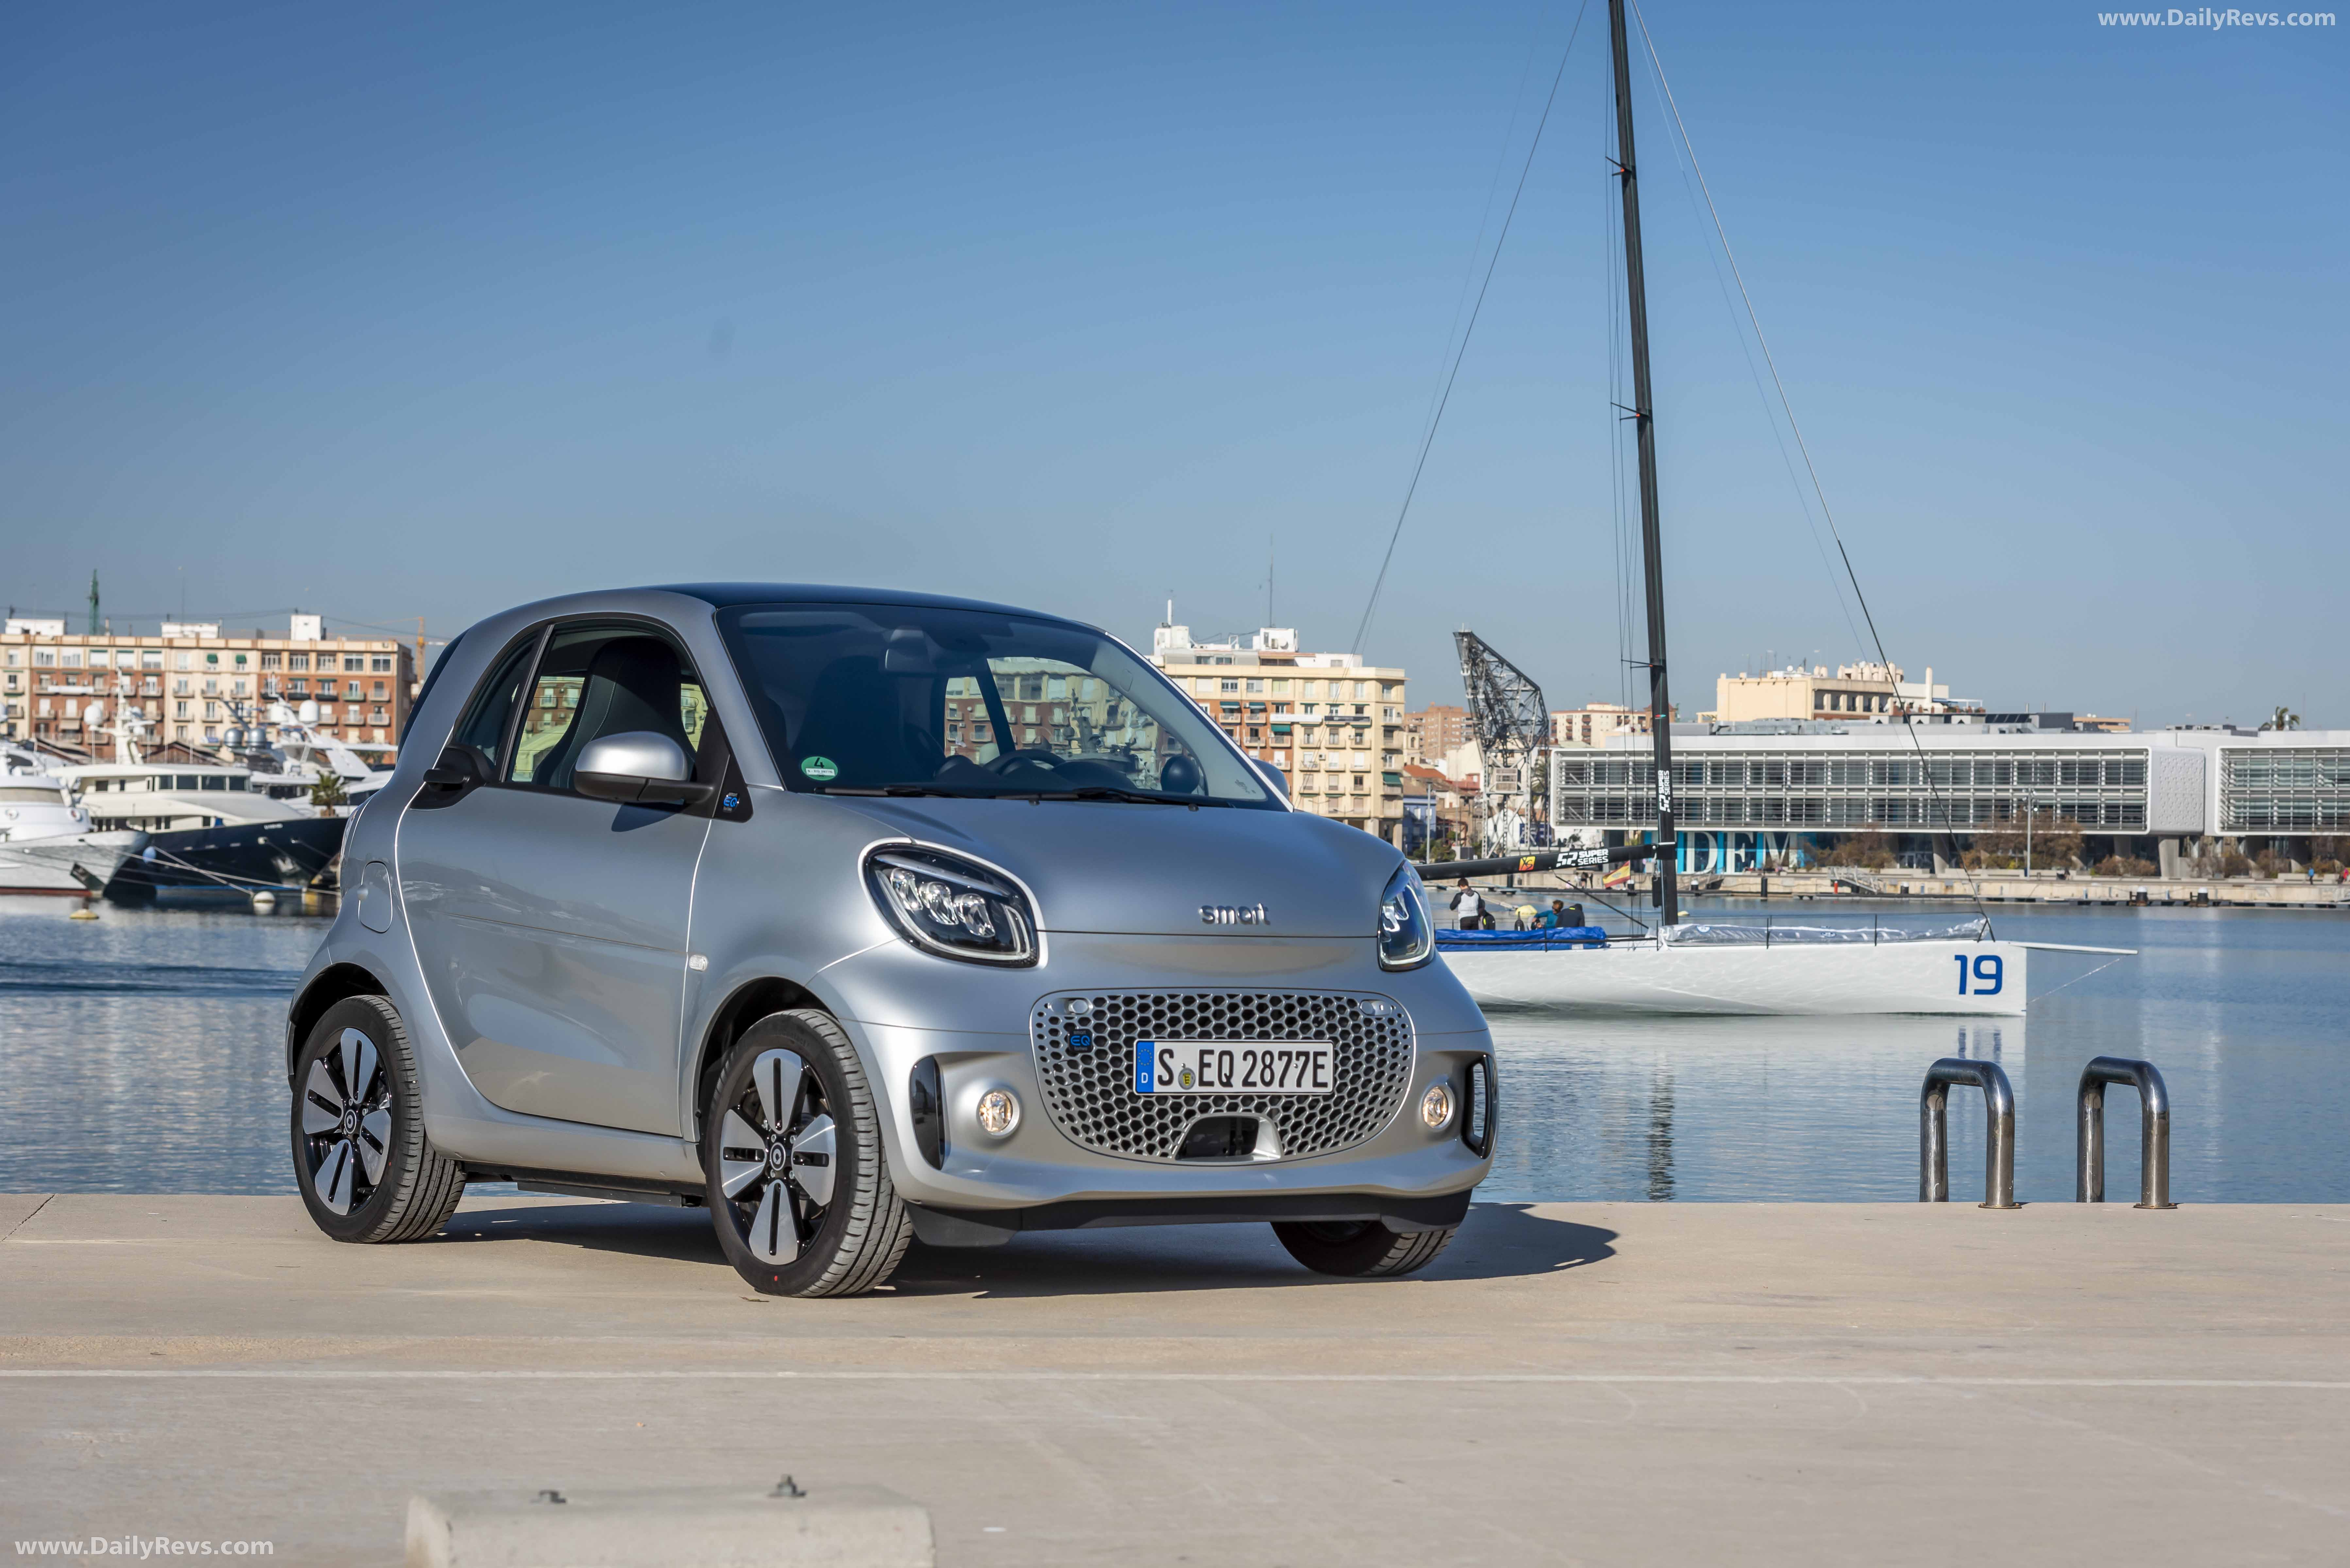 2020 Smart EQ fortwo - HQ Pictures, Specs, Information and ...